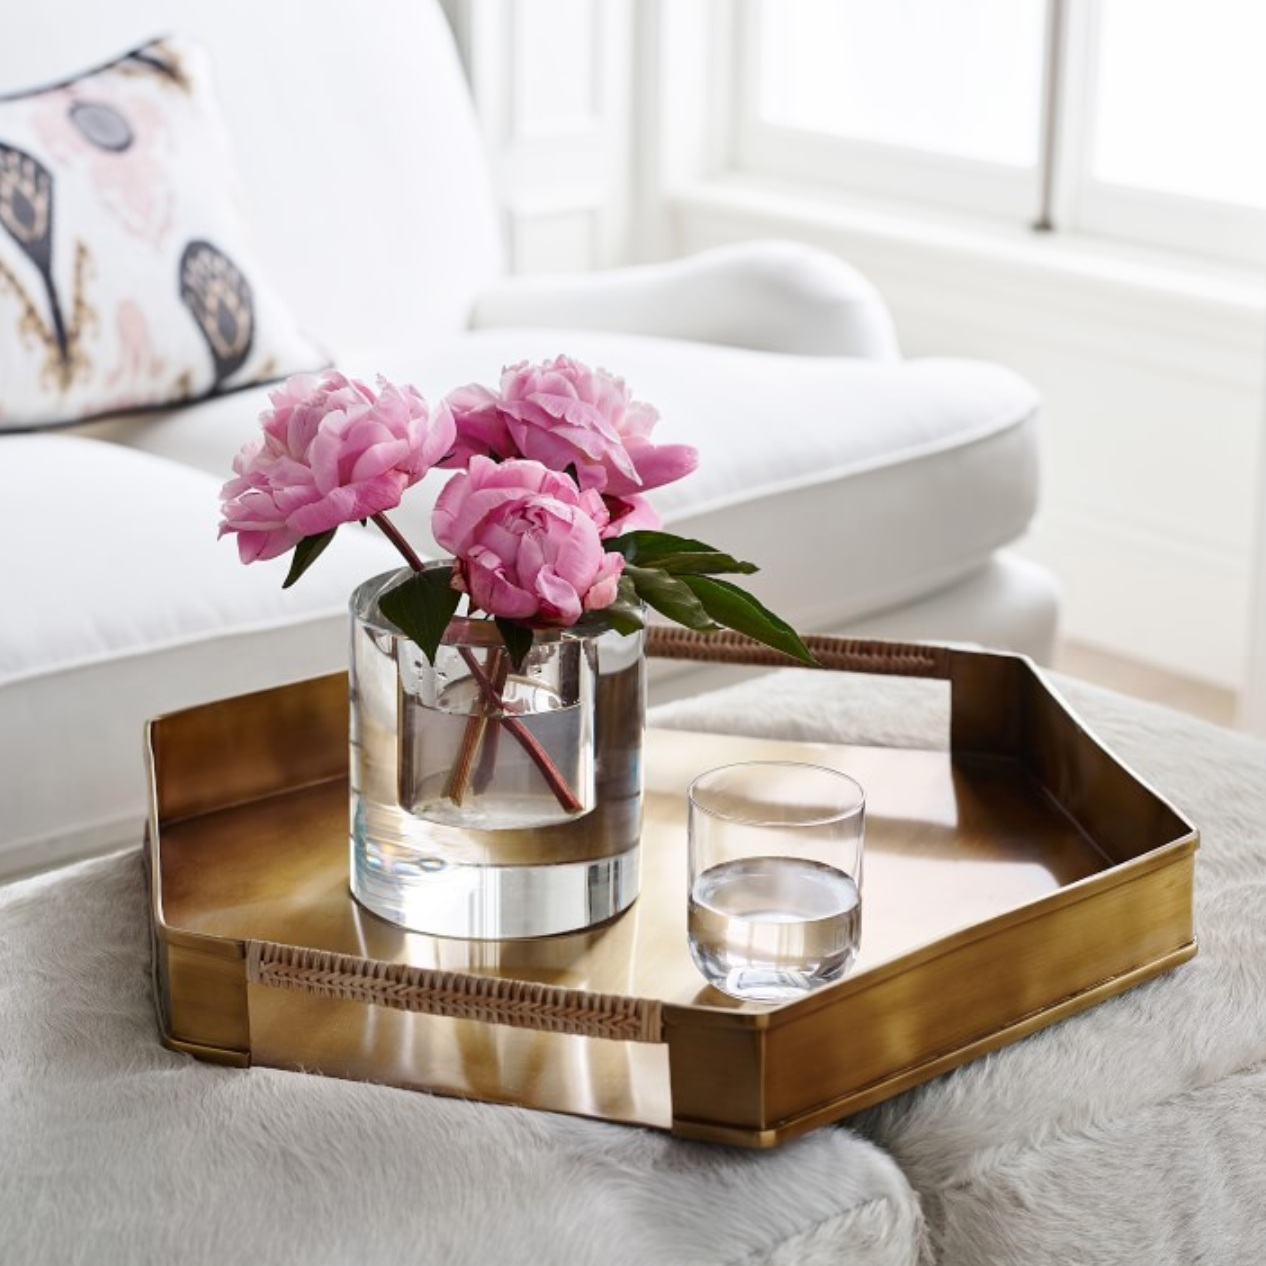 Hexagonal Tray - Brass tray with rattan handles from Paloma Contreras, $250; Williams-Sonoma